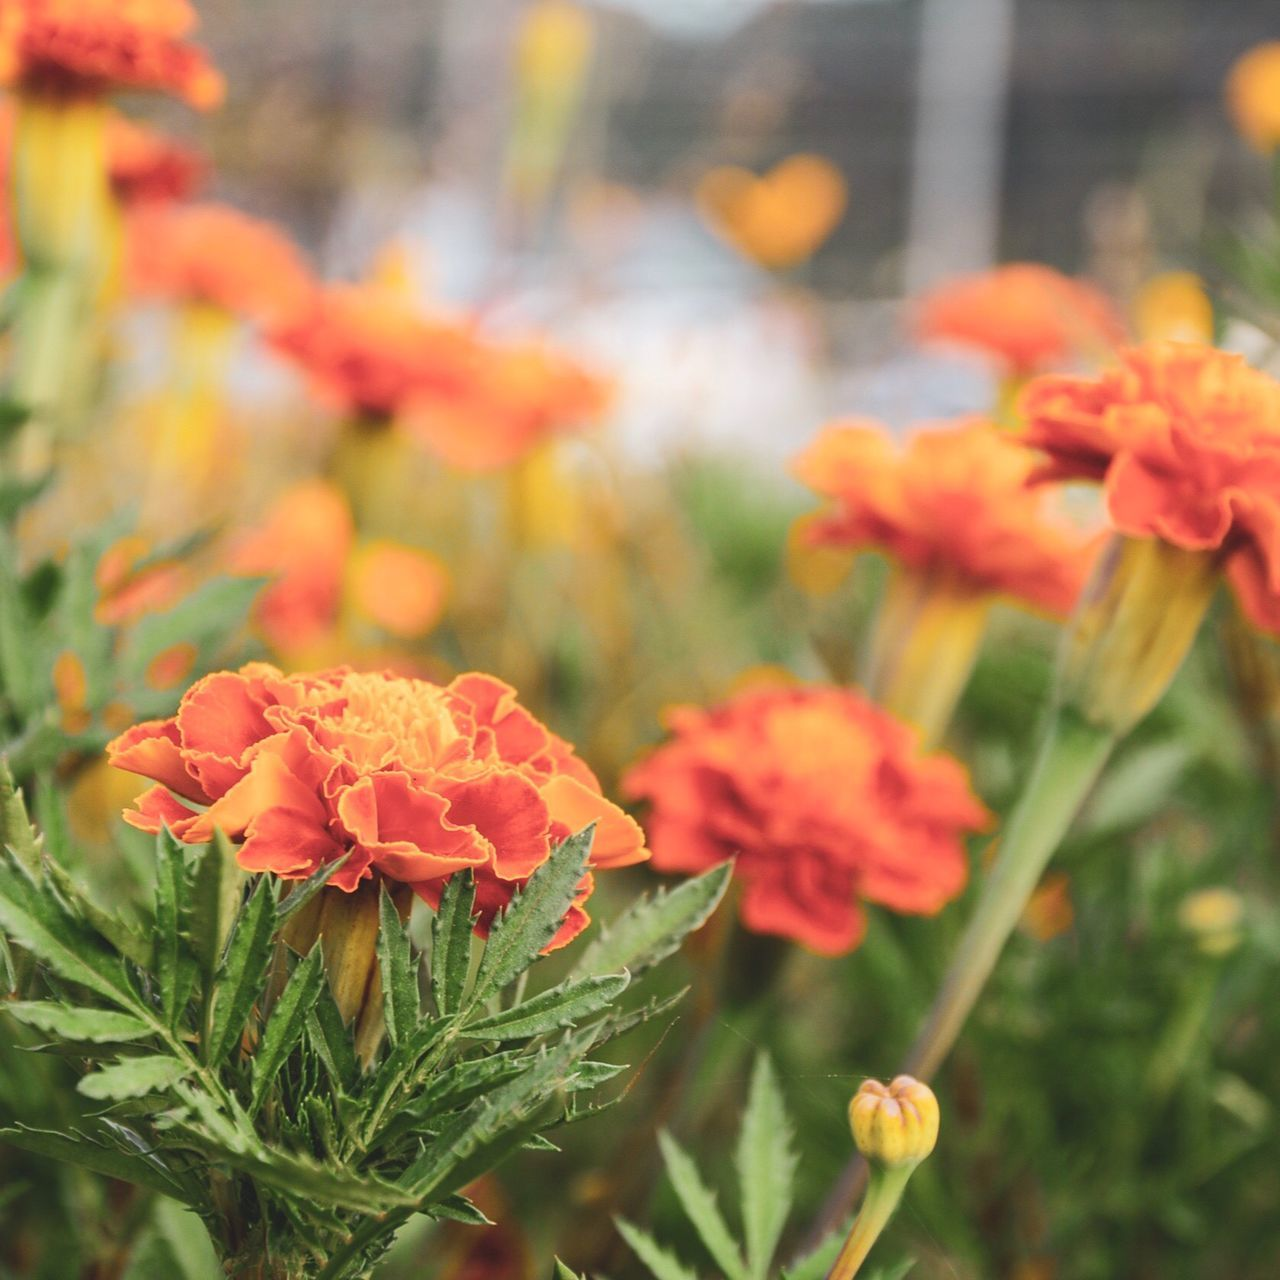 flowering plant, flower, beauty in nature, freshness, vulnerability, plant, fragility, petal, growth, close-up, focus on foreground, inflorescence, flower head, orange color, nature, day, marigold, no people, botany, outdoors, bunch of flowers